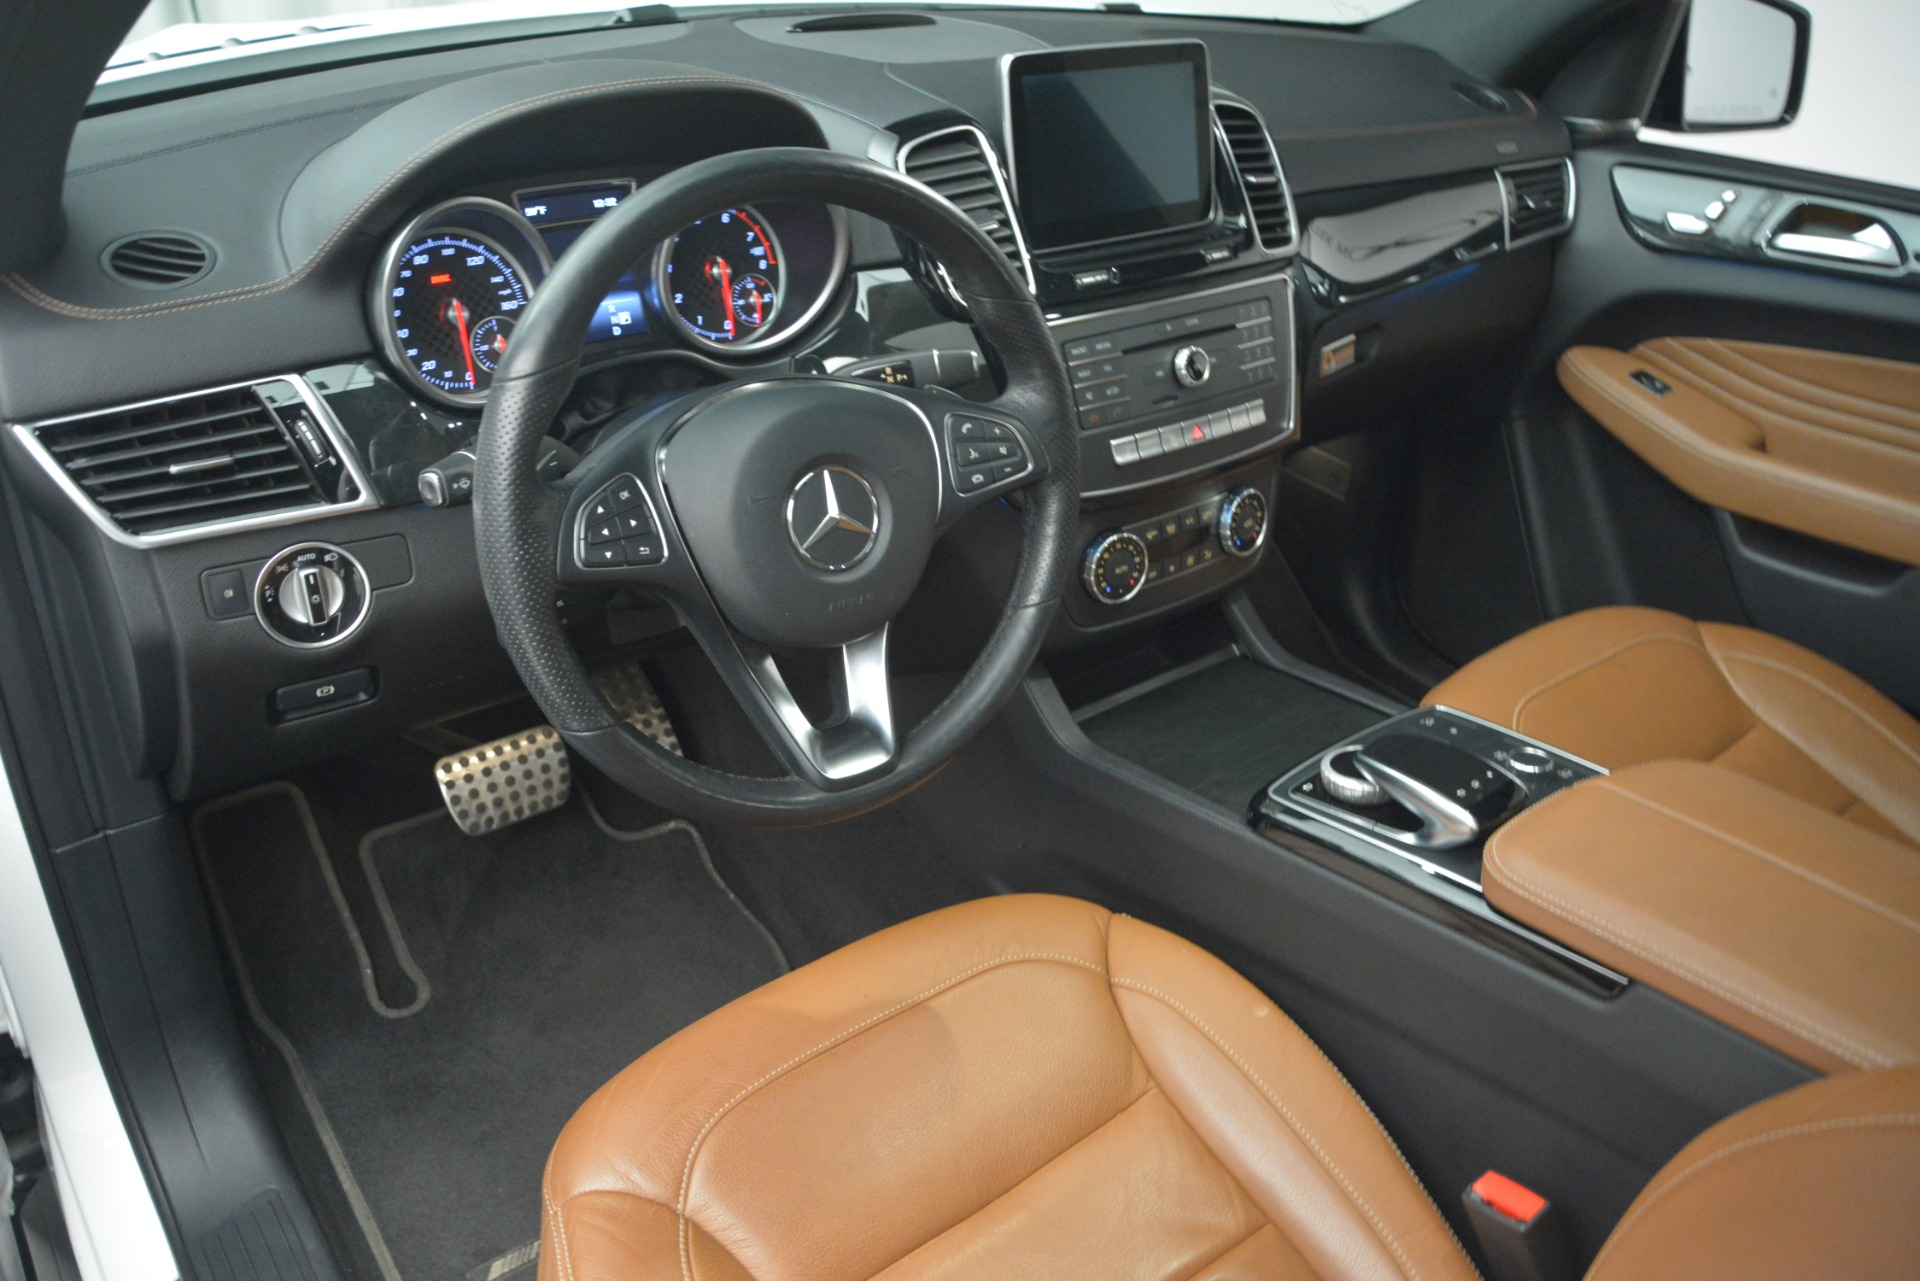 Used 2016 Mercedes Benz GLE 450 AMG Coupe 4MATIC